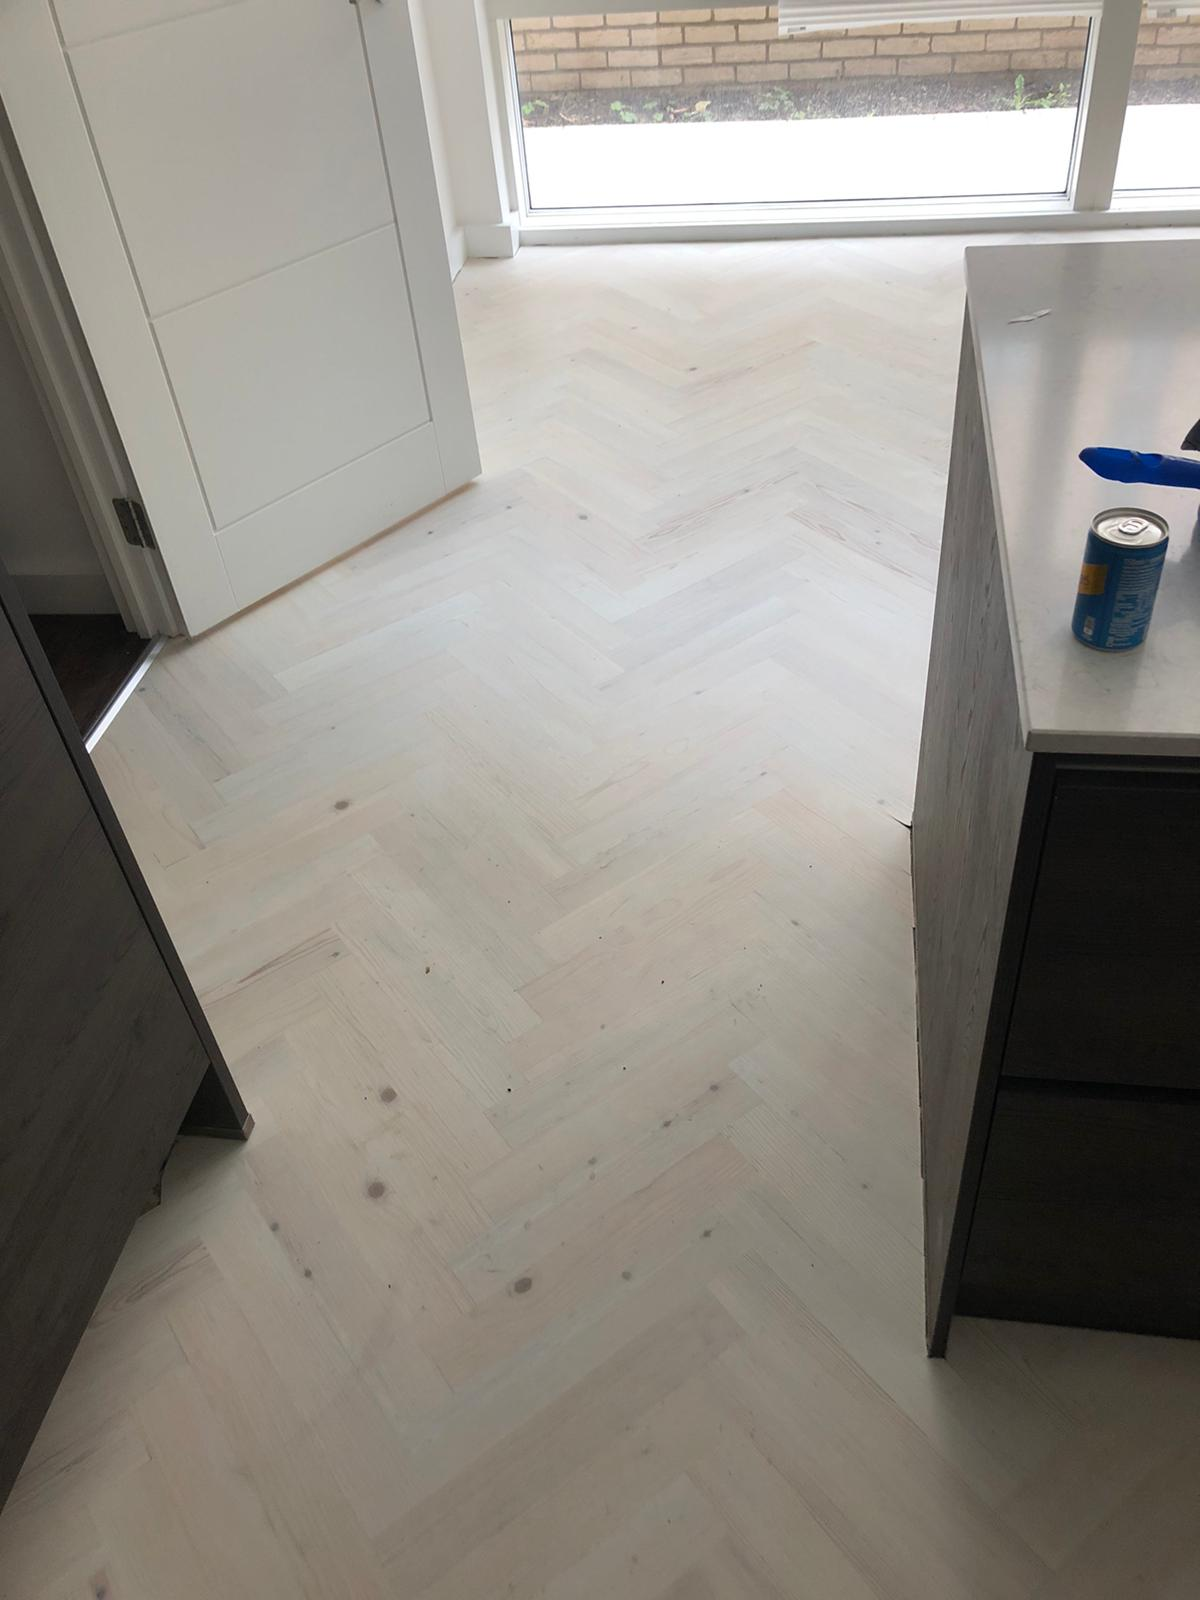 Karndean Knight Tile Washed Scand Prime Herringbone in Chelsea 1